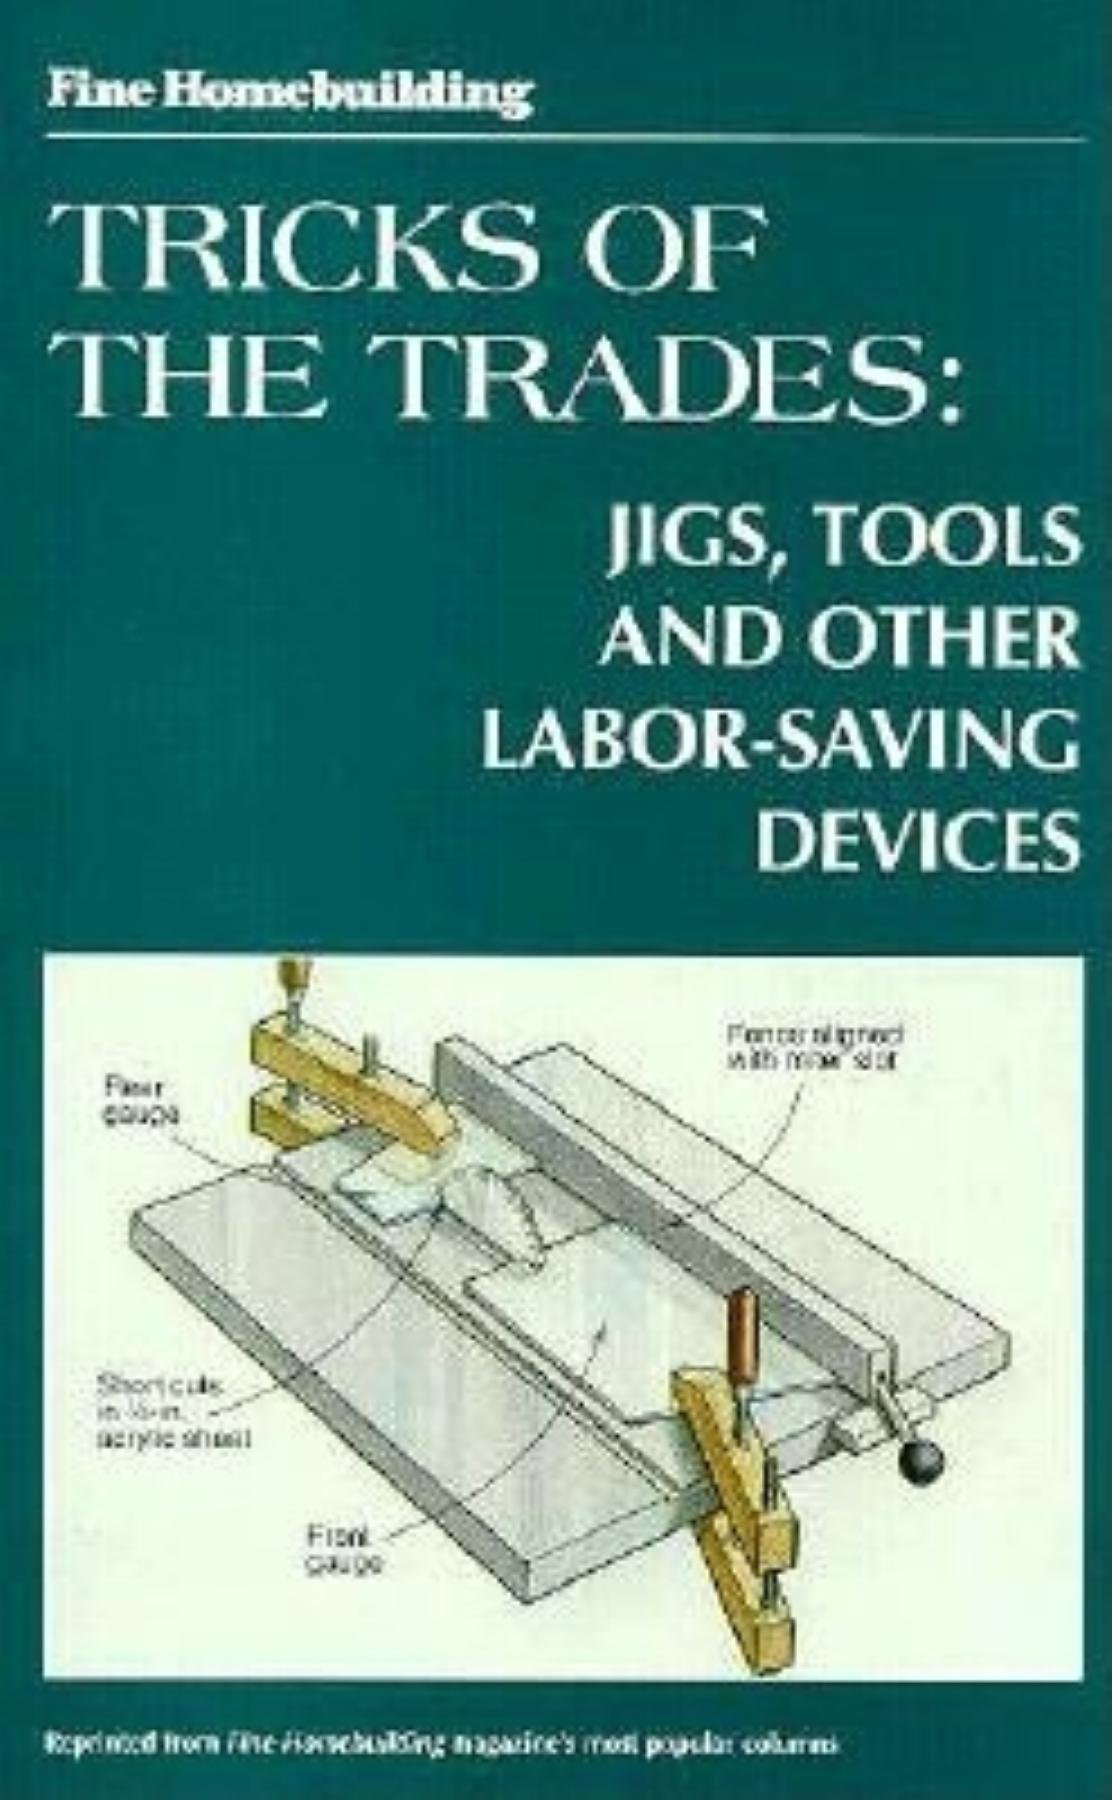 Tricks of the Trades:  Jigs, Tools and other Labor-Saving Devices (Fine Homebuilding)